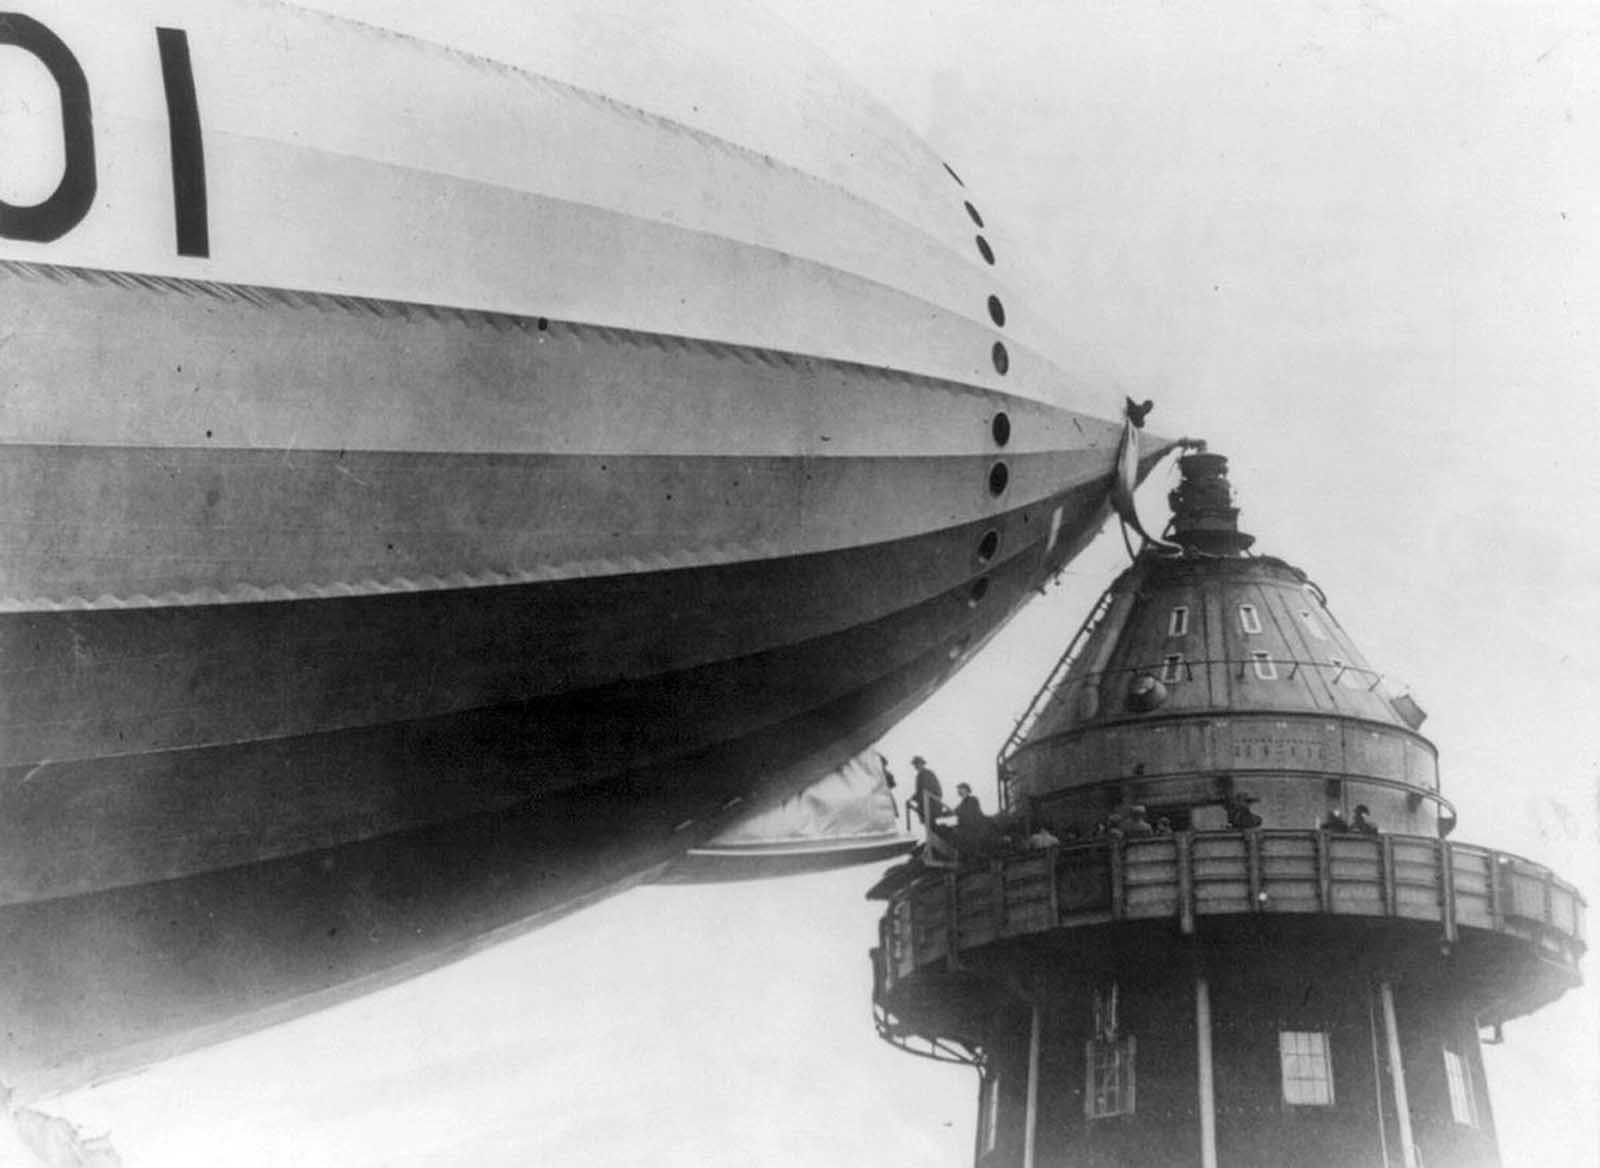 British M.P.s walk onto an airship gangplank, in Cardington, England, in the 1920s.